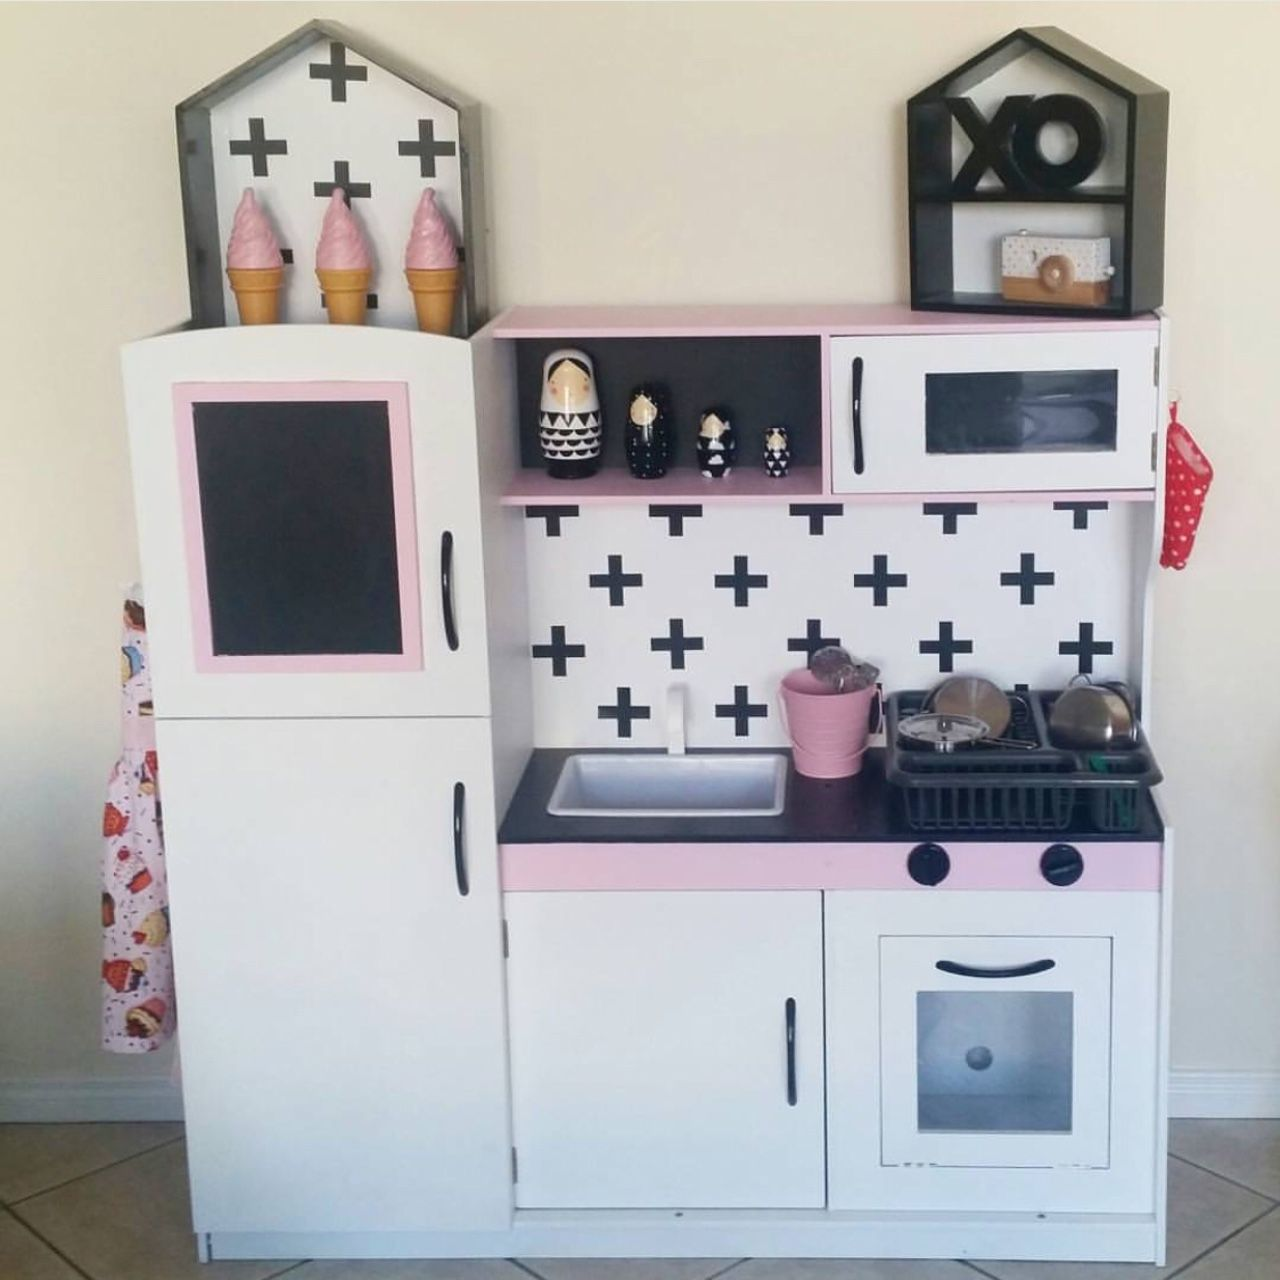 kmart hack our urban box kmart hacks kids kitchen play kitchen on kitchen ideas kmart id=42077